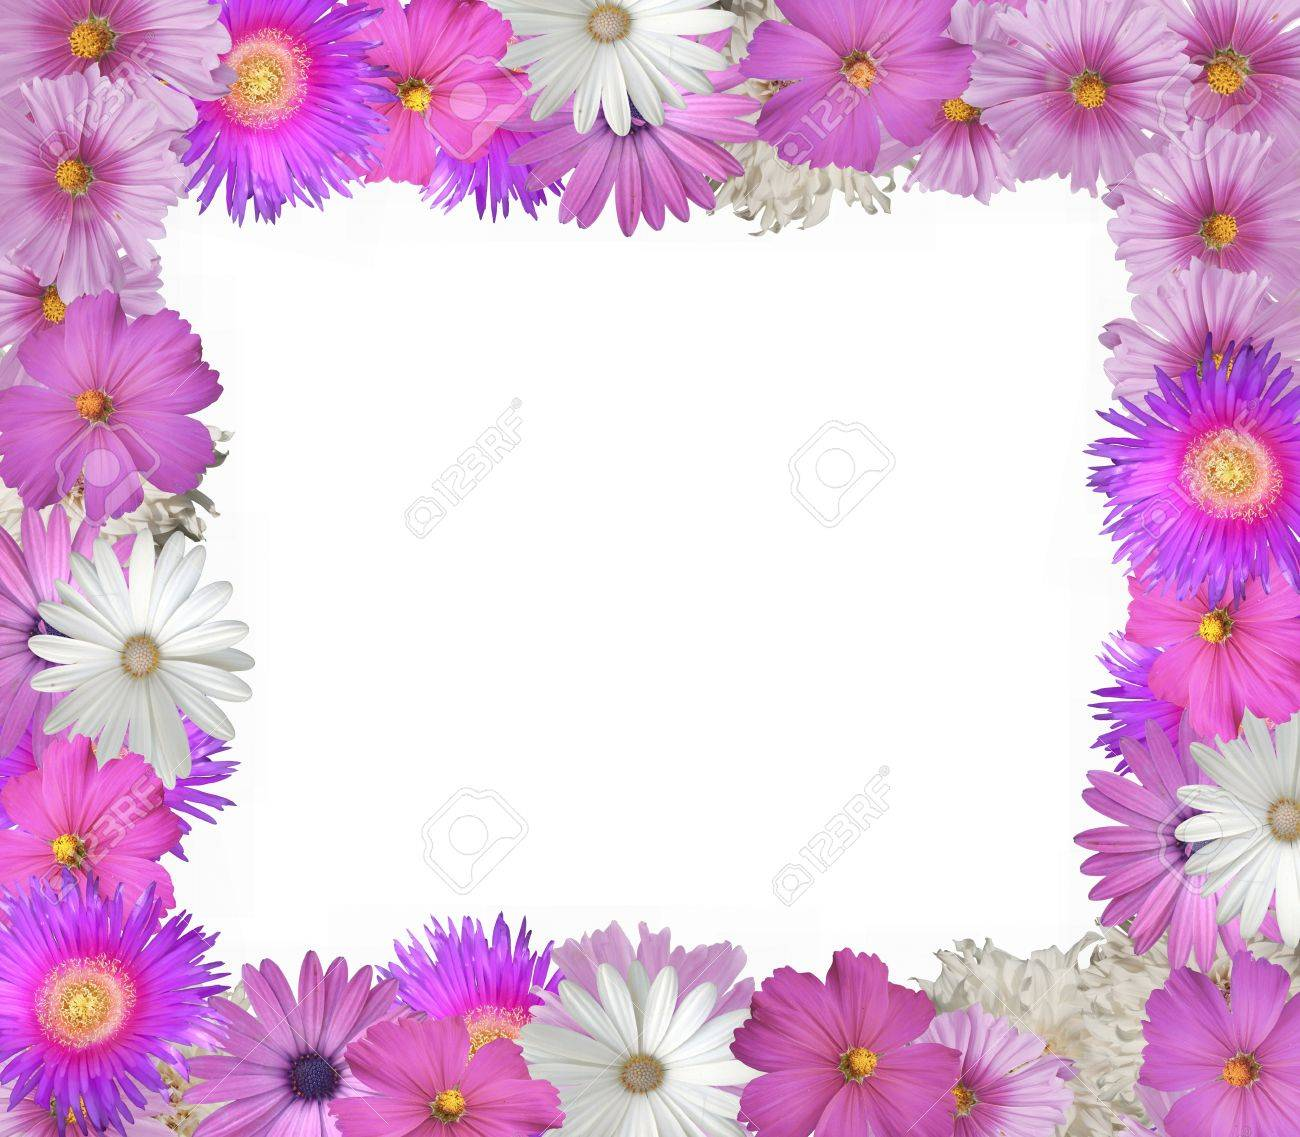 Pretty frame or border of pink and white spring and summer flowers pretty frame or border of pink and white spring and summer flowers stock photo 12726389 mightylinksfo